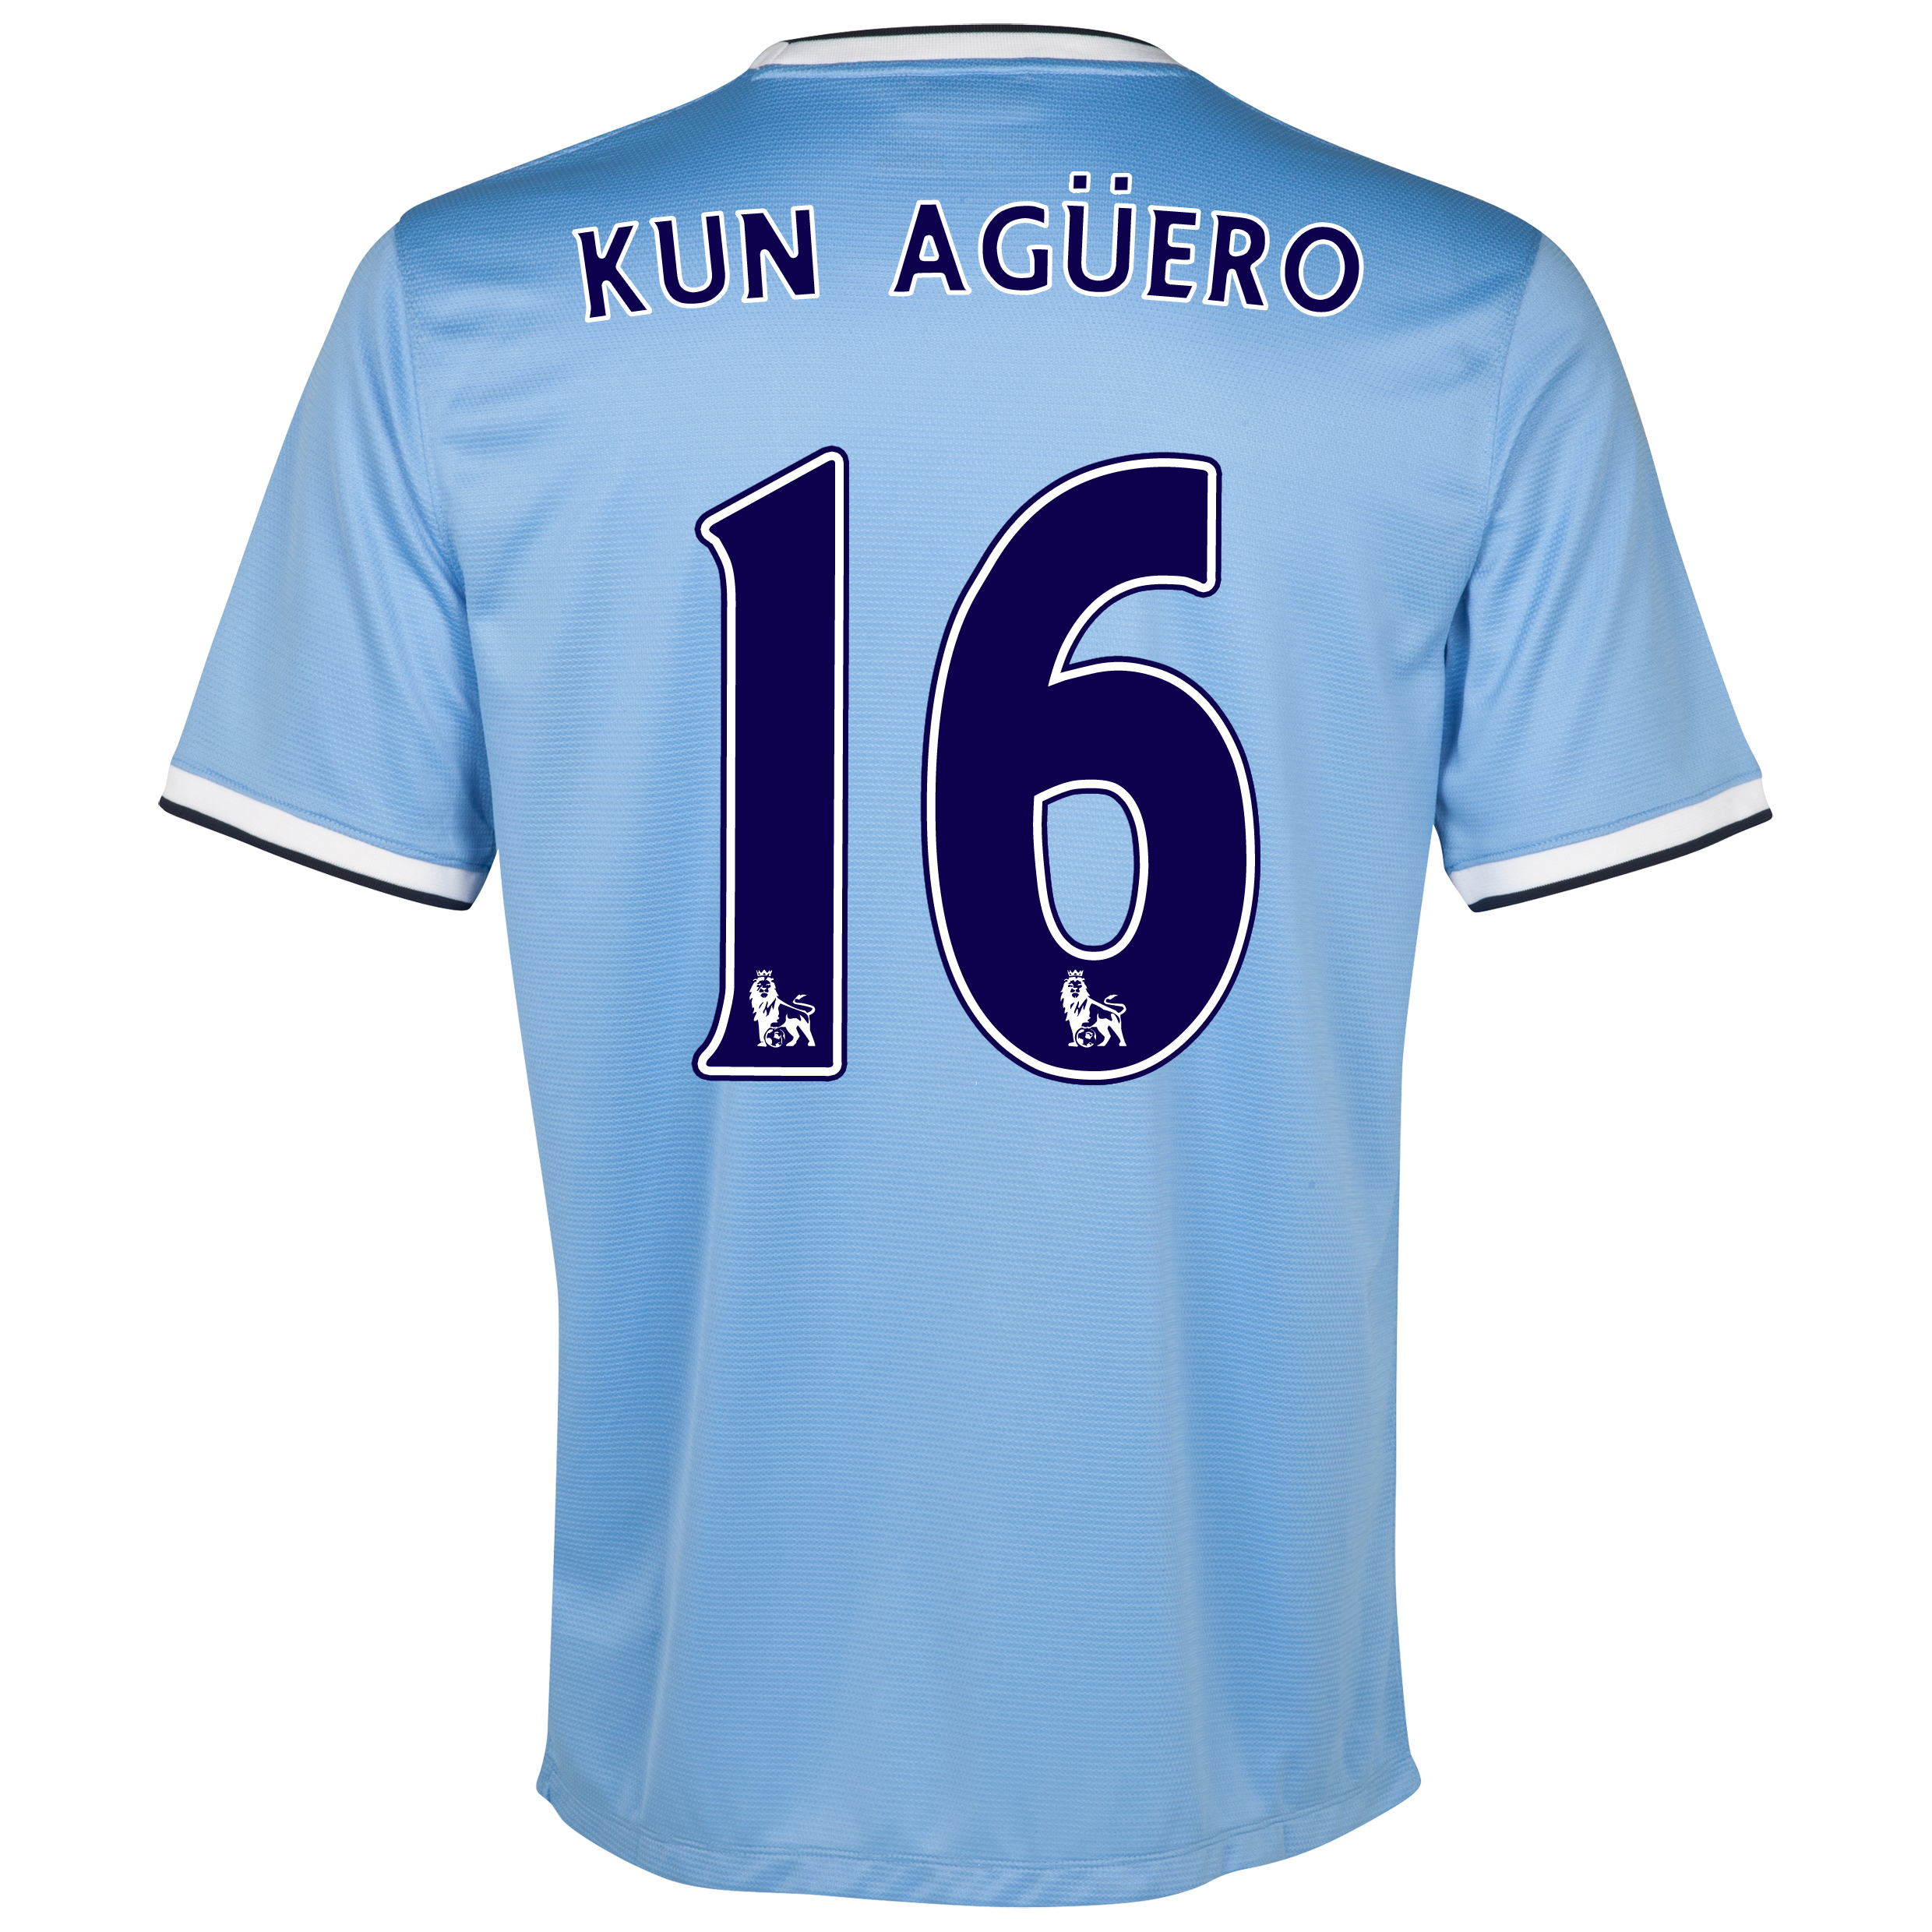 Aguero 16 Hero shirts